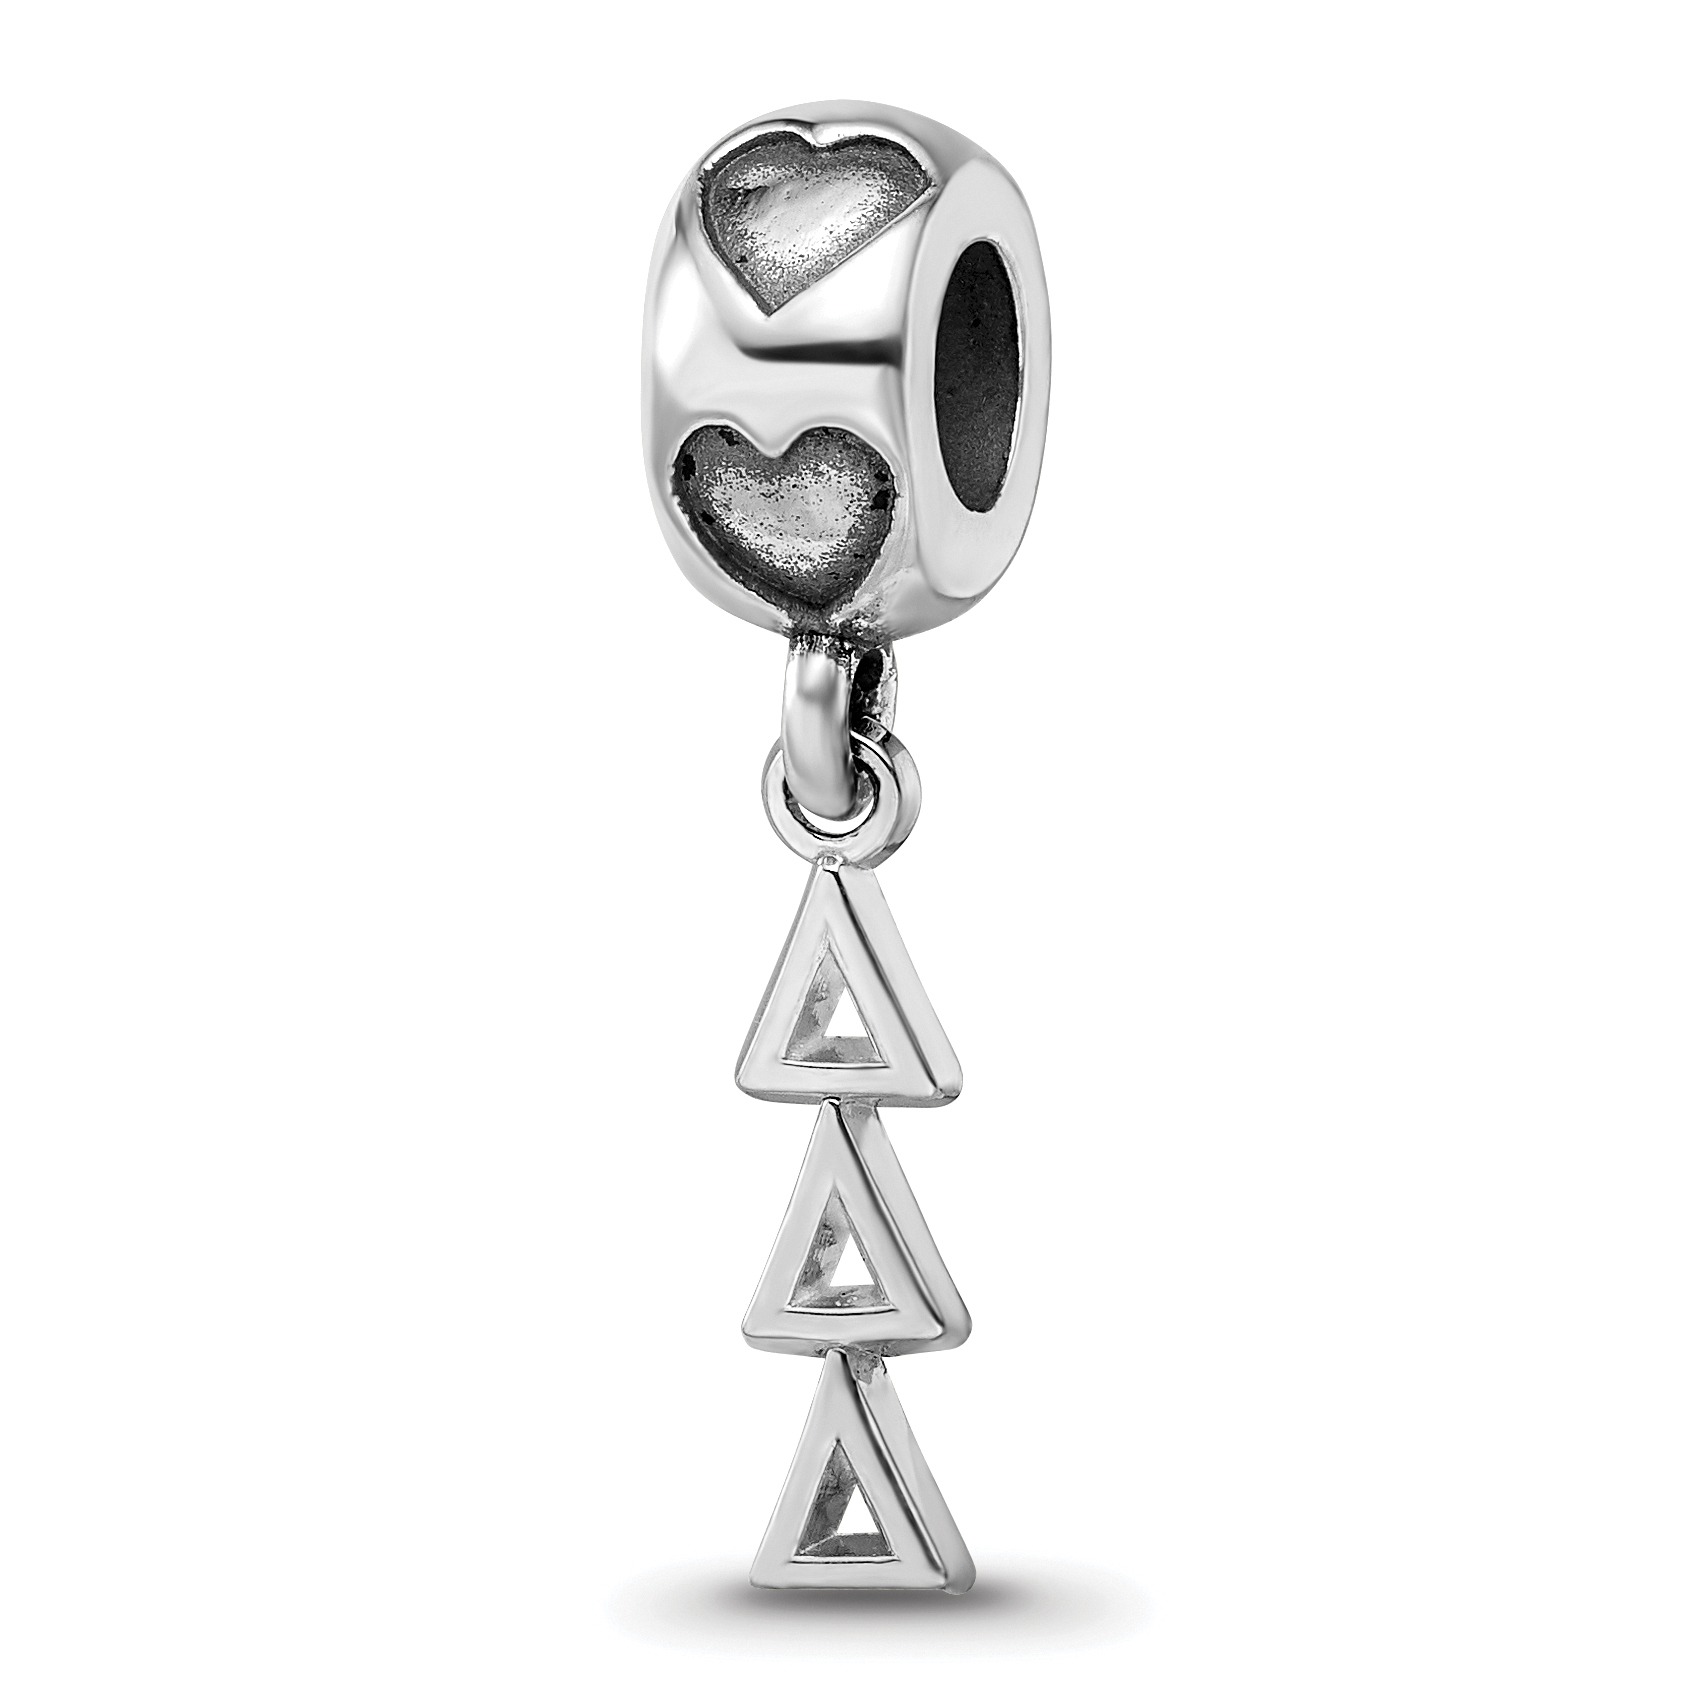 Greek Sororities SS PI BETA PHI VERTICAL LETTERS PENDANT HEART BEAD BLACK LEATH Size One Size